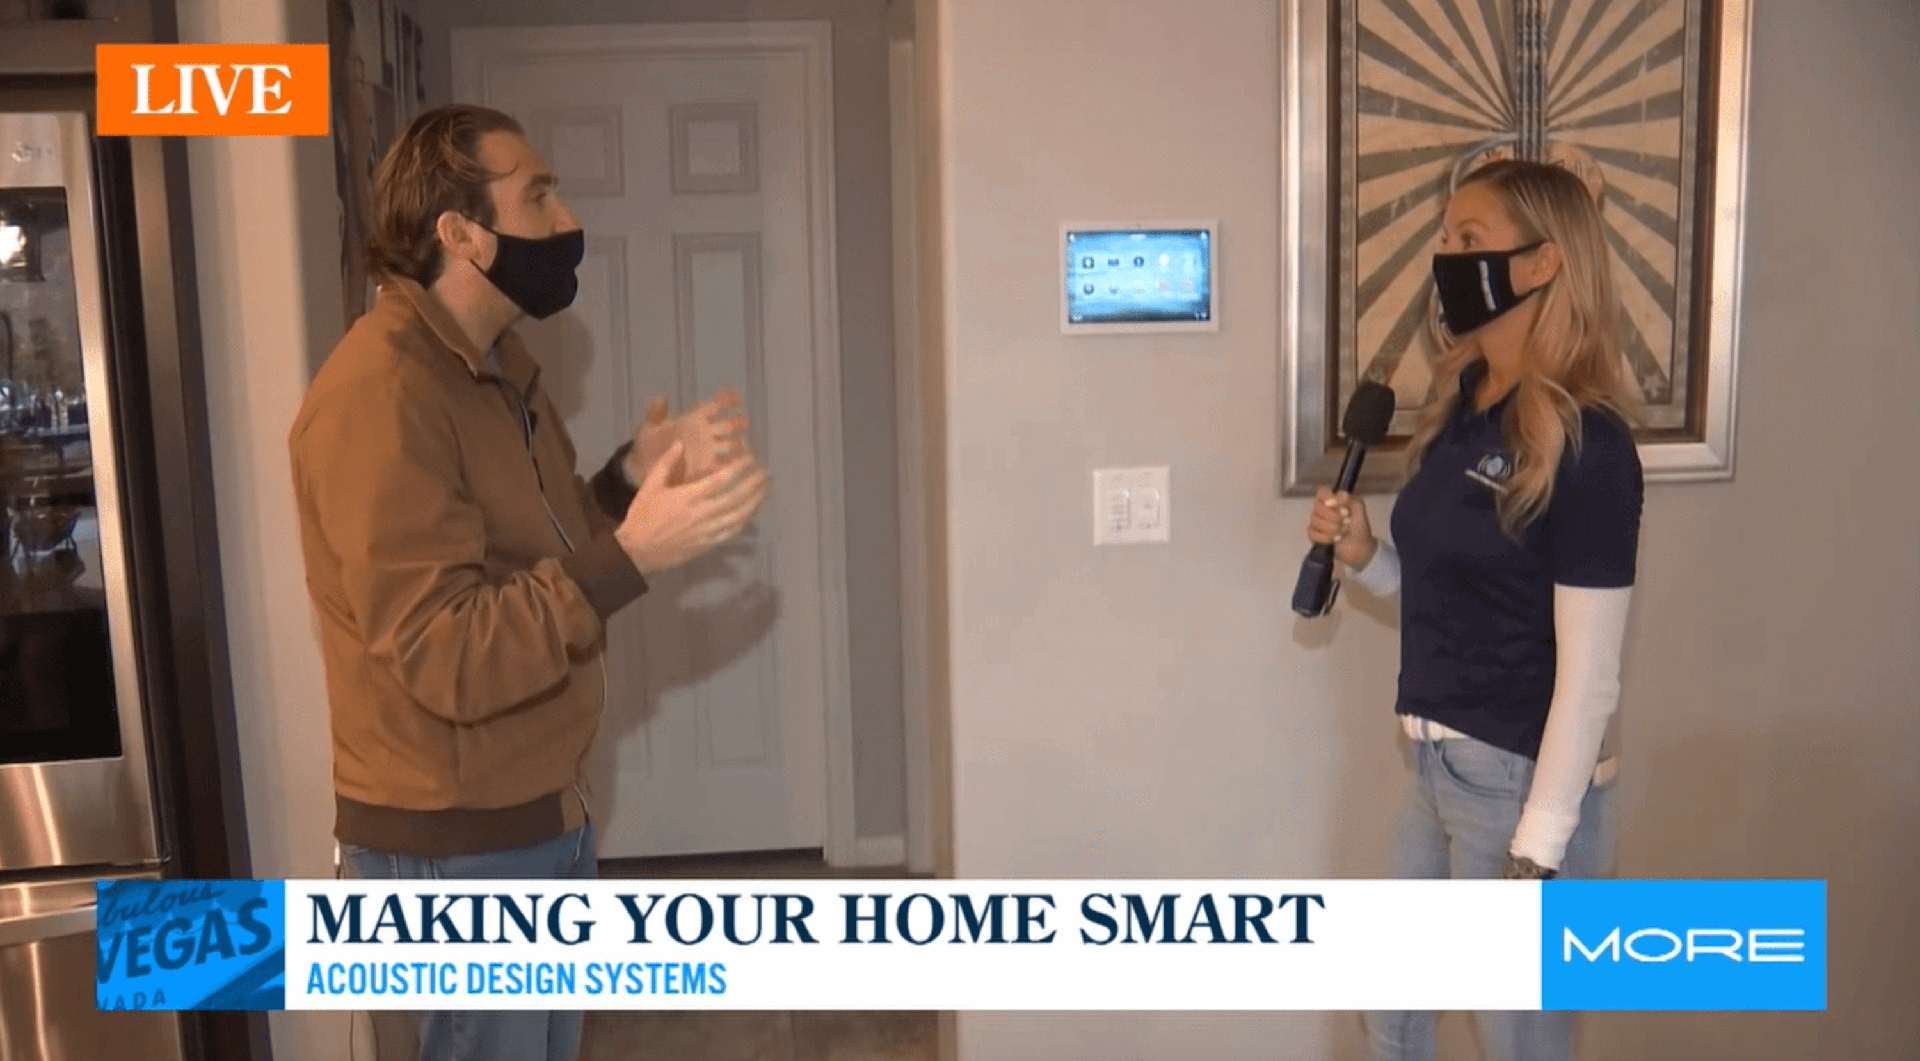 Discussing Smart Home Trends to Watch for in 2021 with FOX 5 Las Vegas